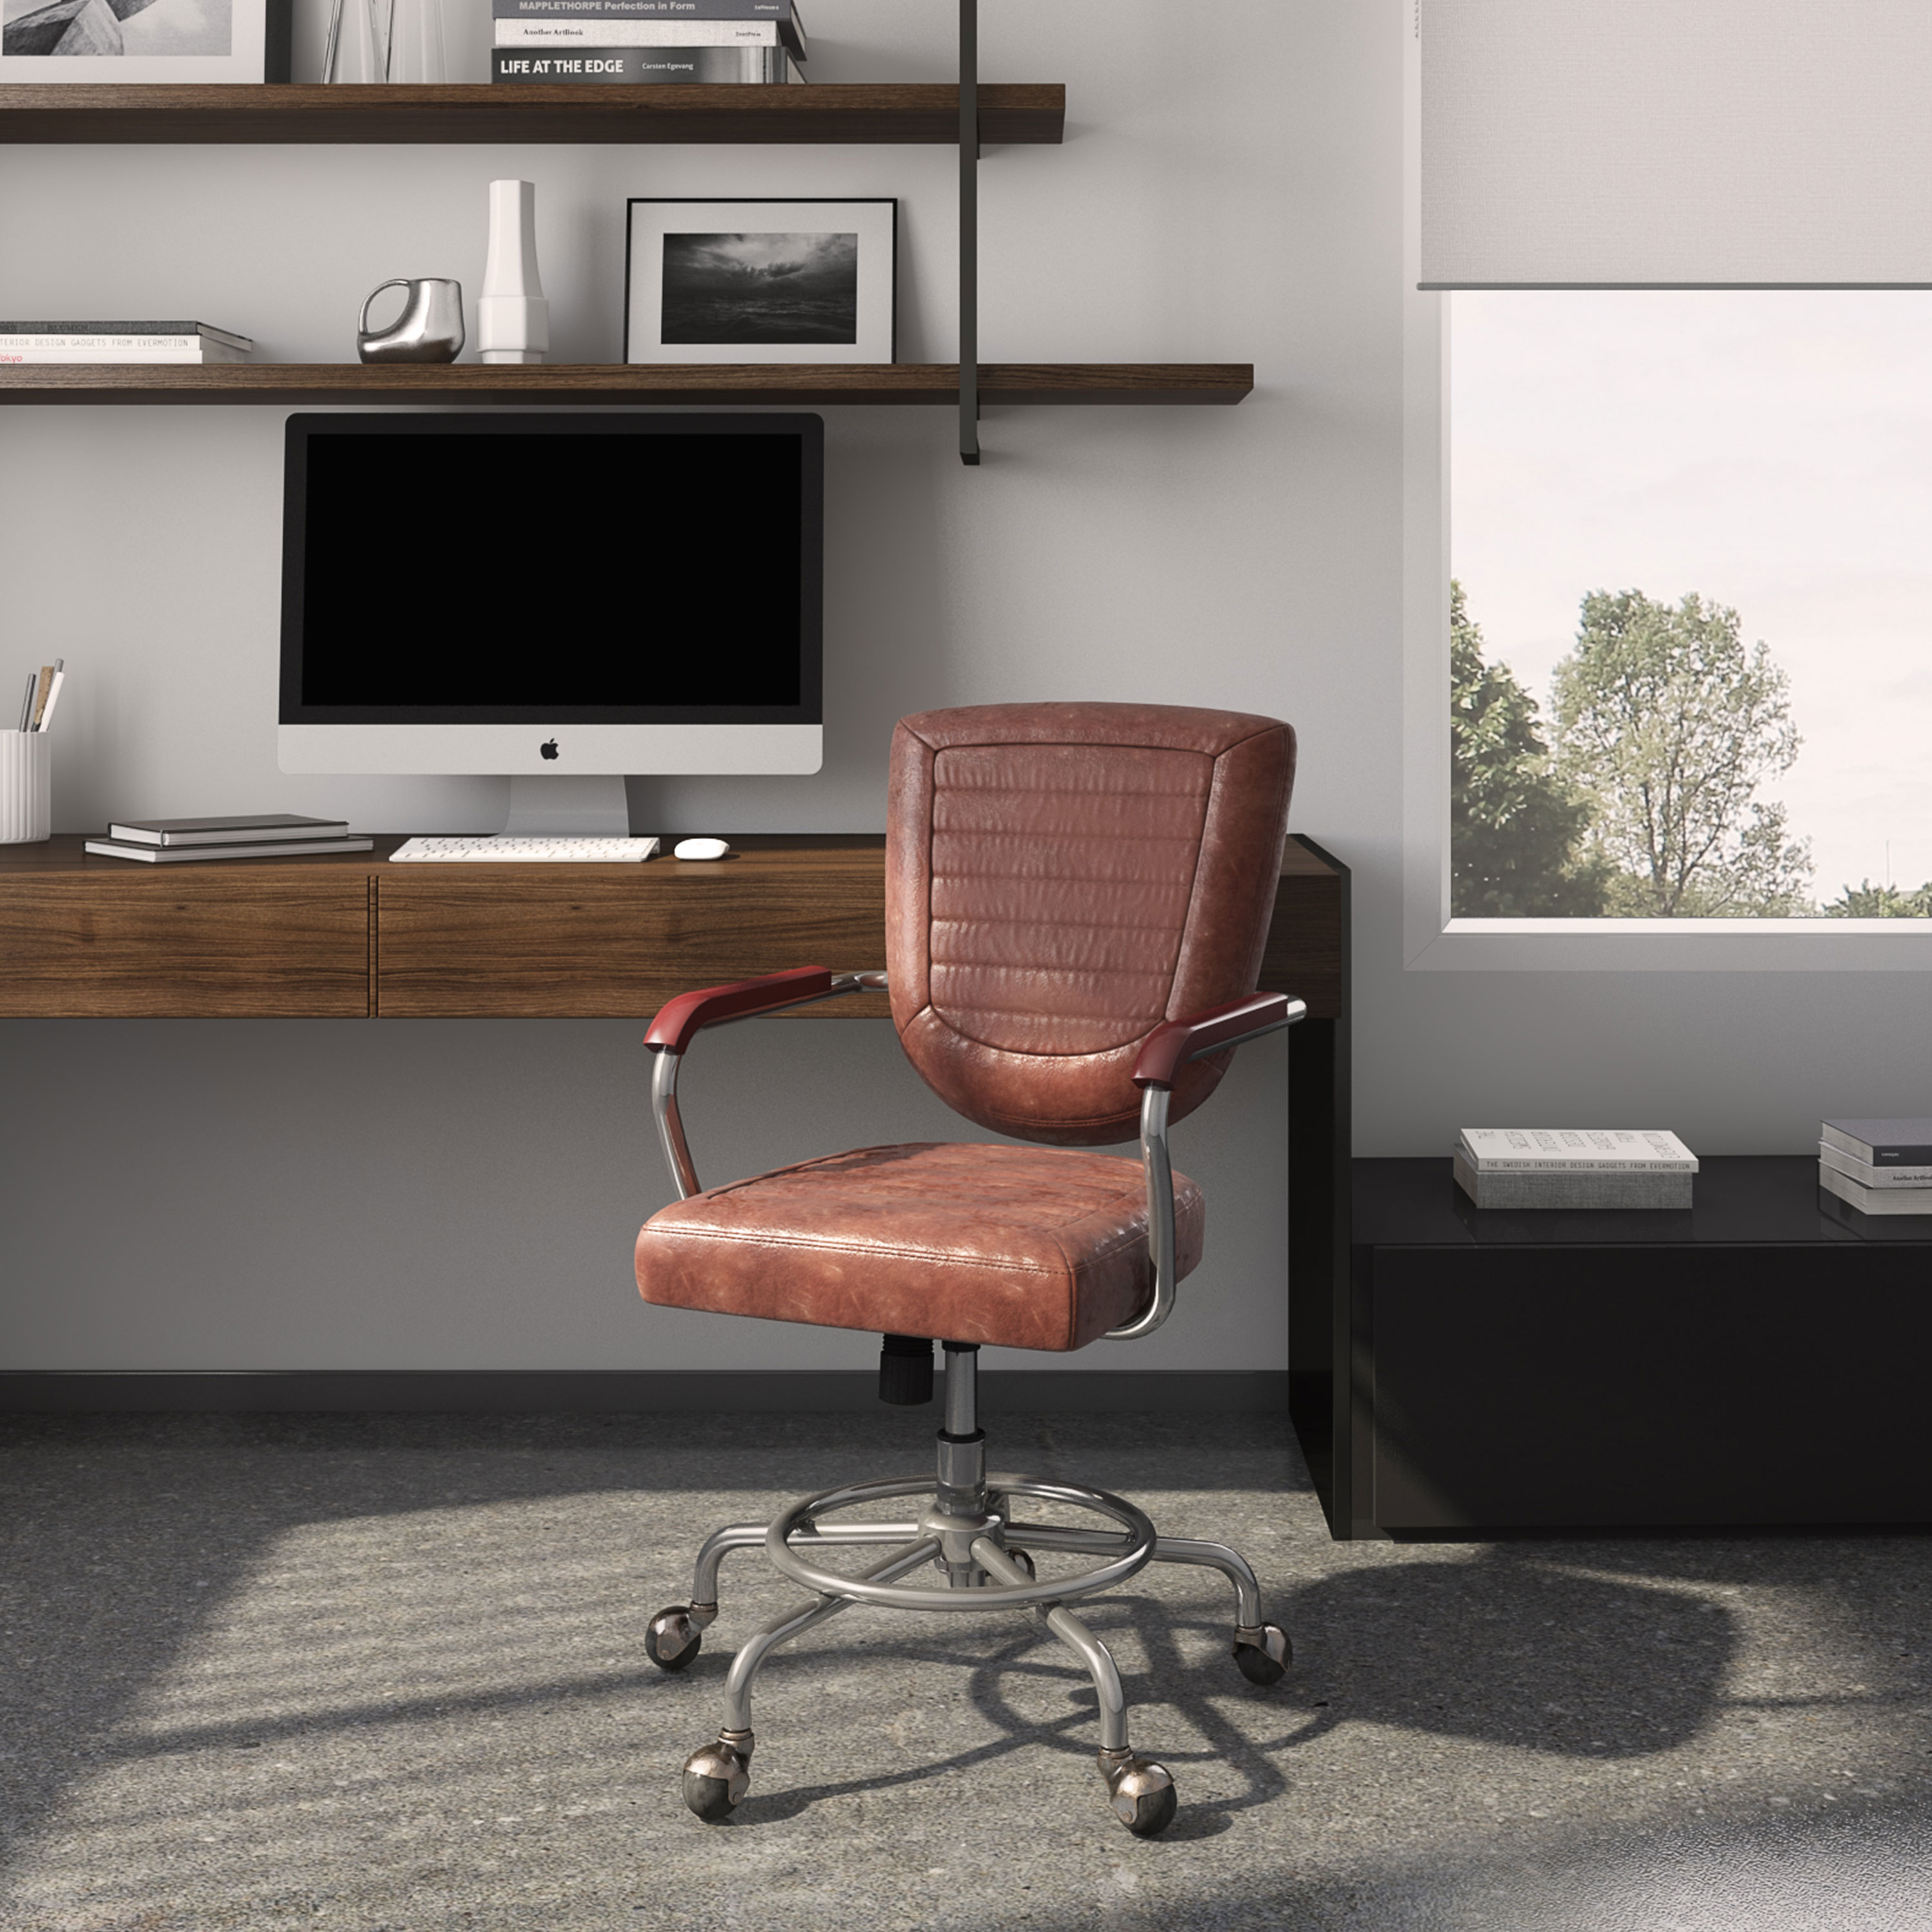 Walmart Modern Farmhouse Office Chair Only 33 Was 99 Bargain Shopping With Designer Row